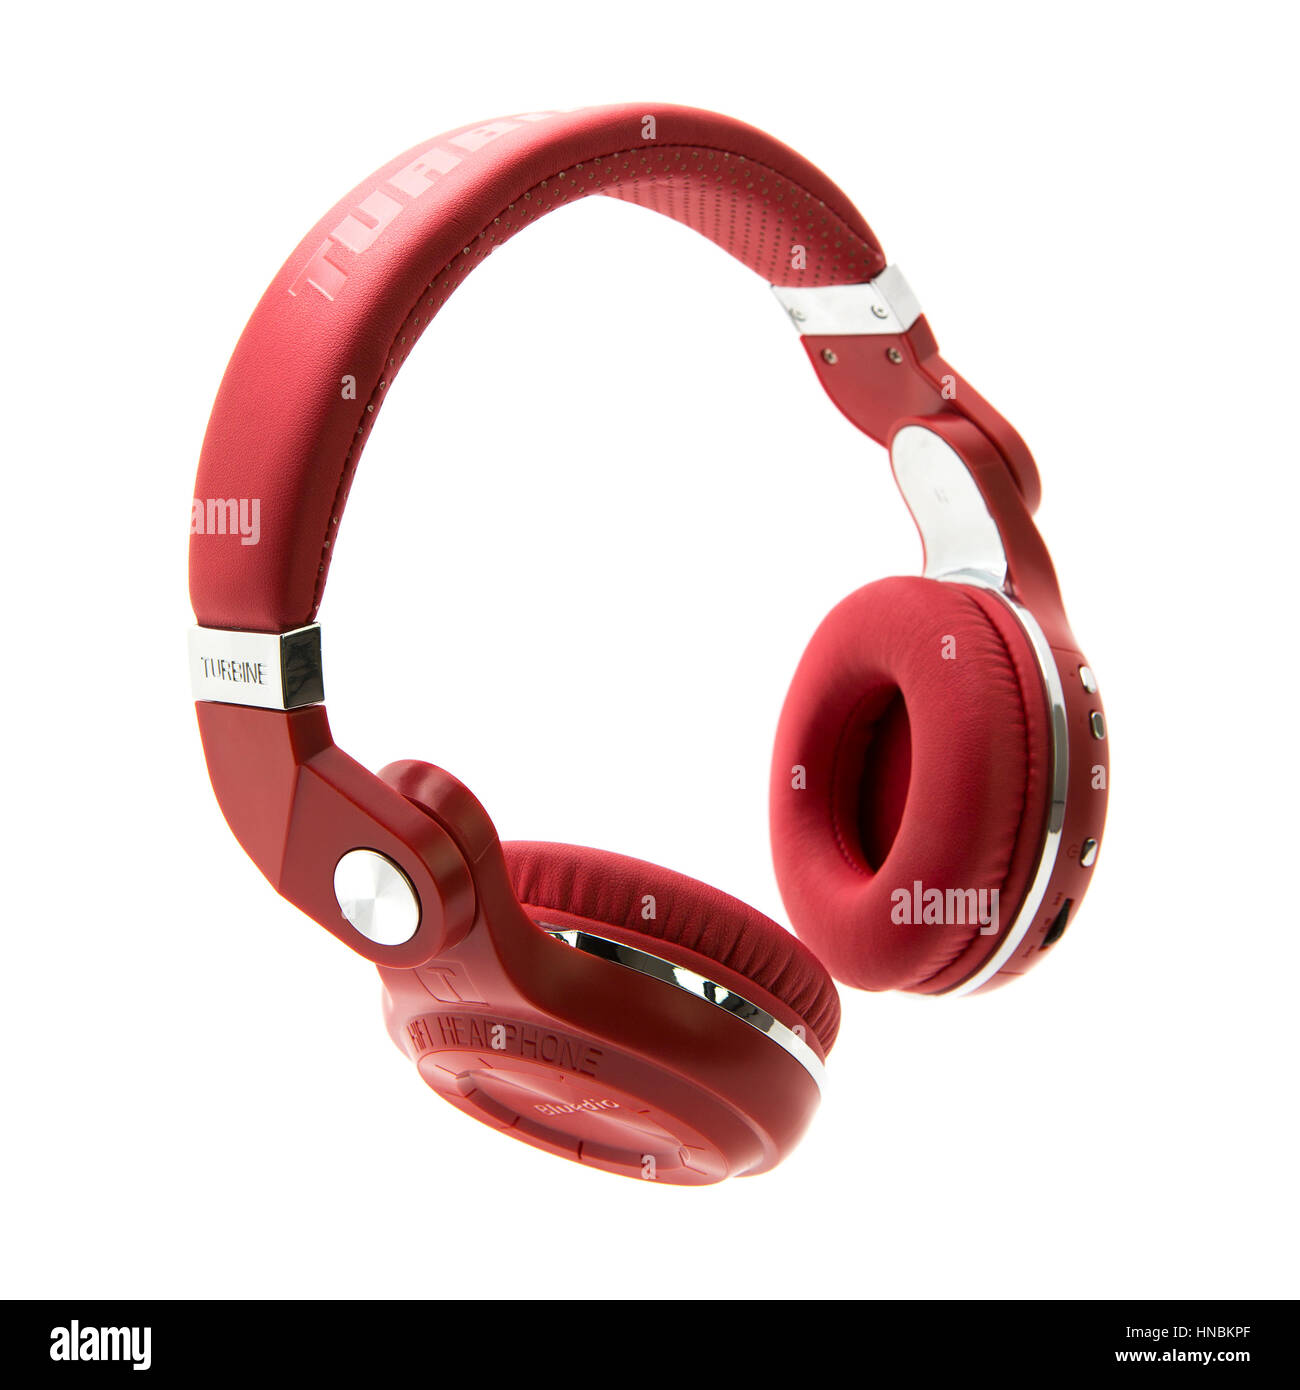 Chic & Stylish Bluedio Turbine Overear Bluetooth Red Headphones, front view, isolated on white background - Stock Image